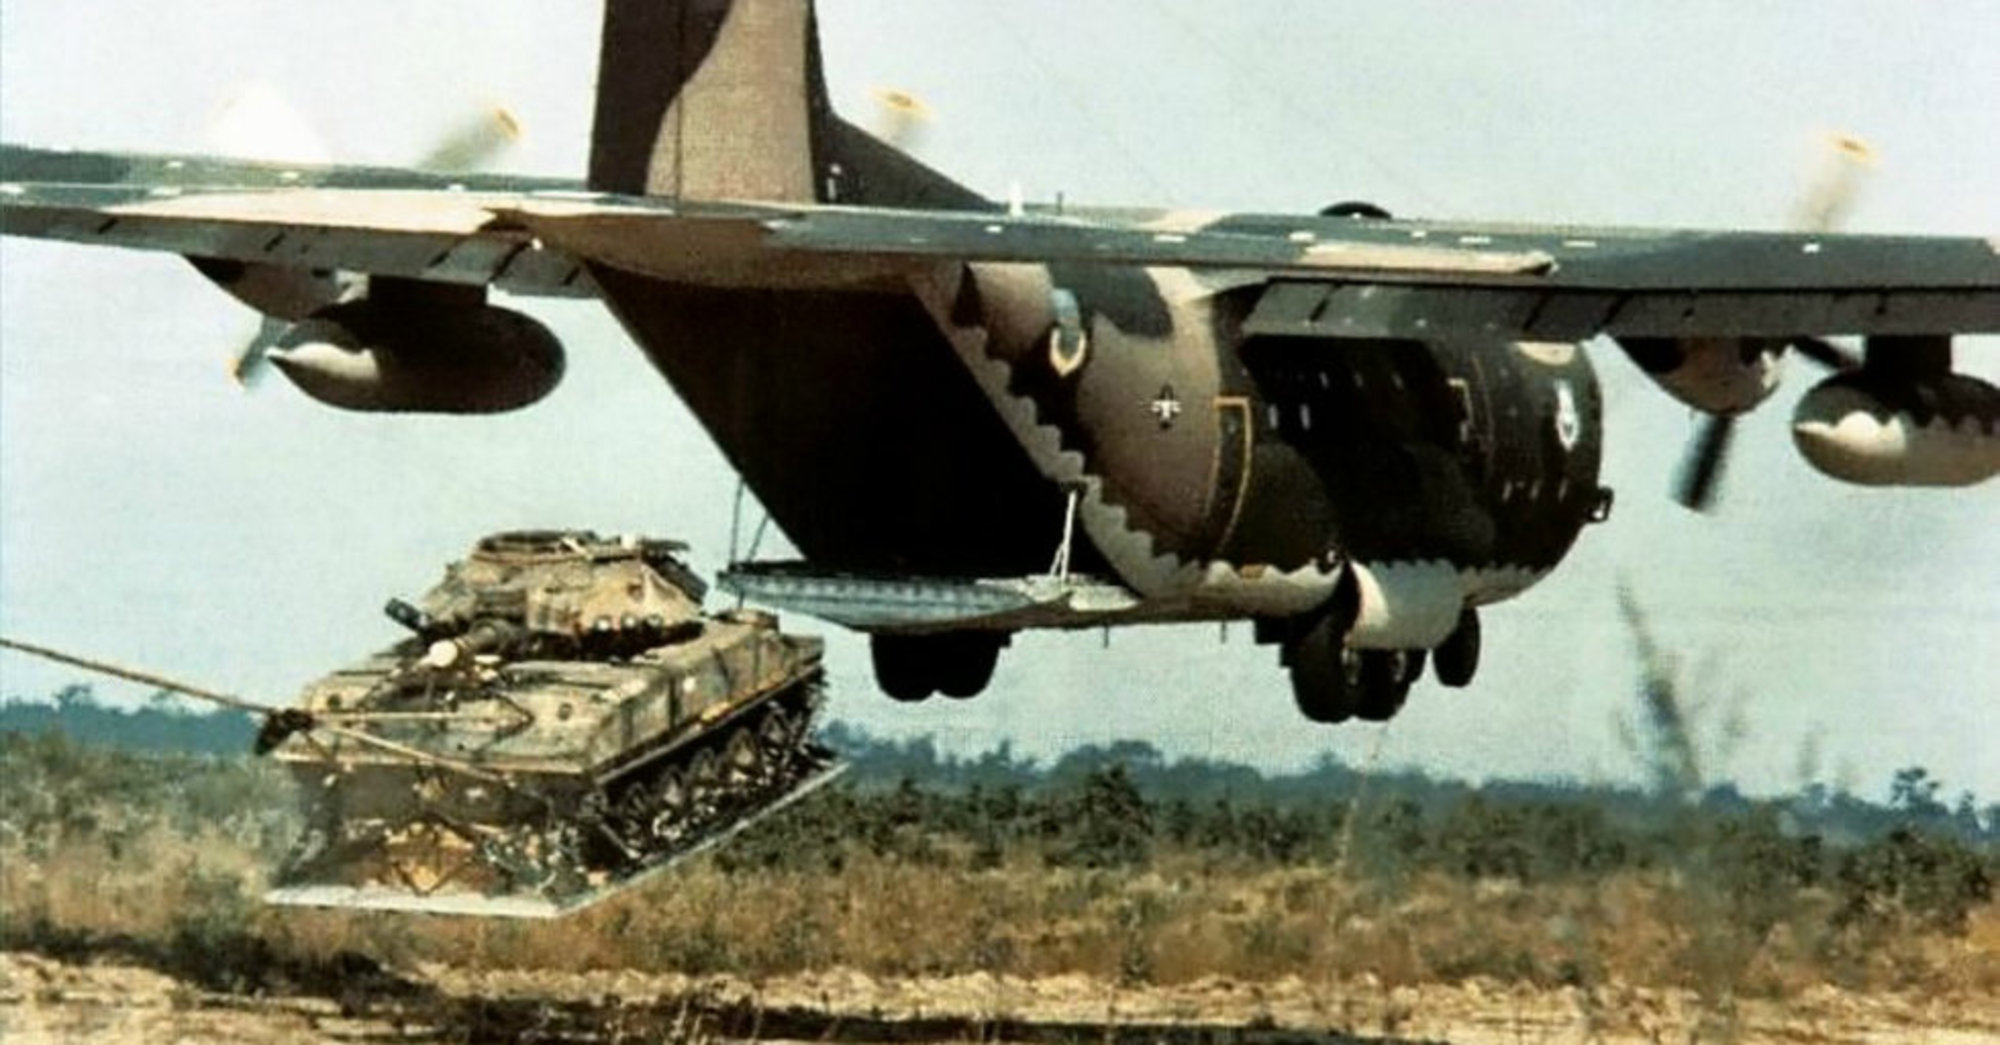 82nd gets air-dropped armor, again | laststandonzombieisland